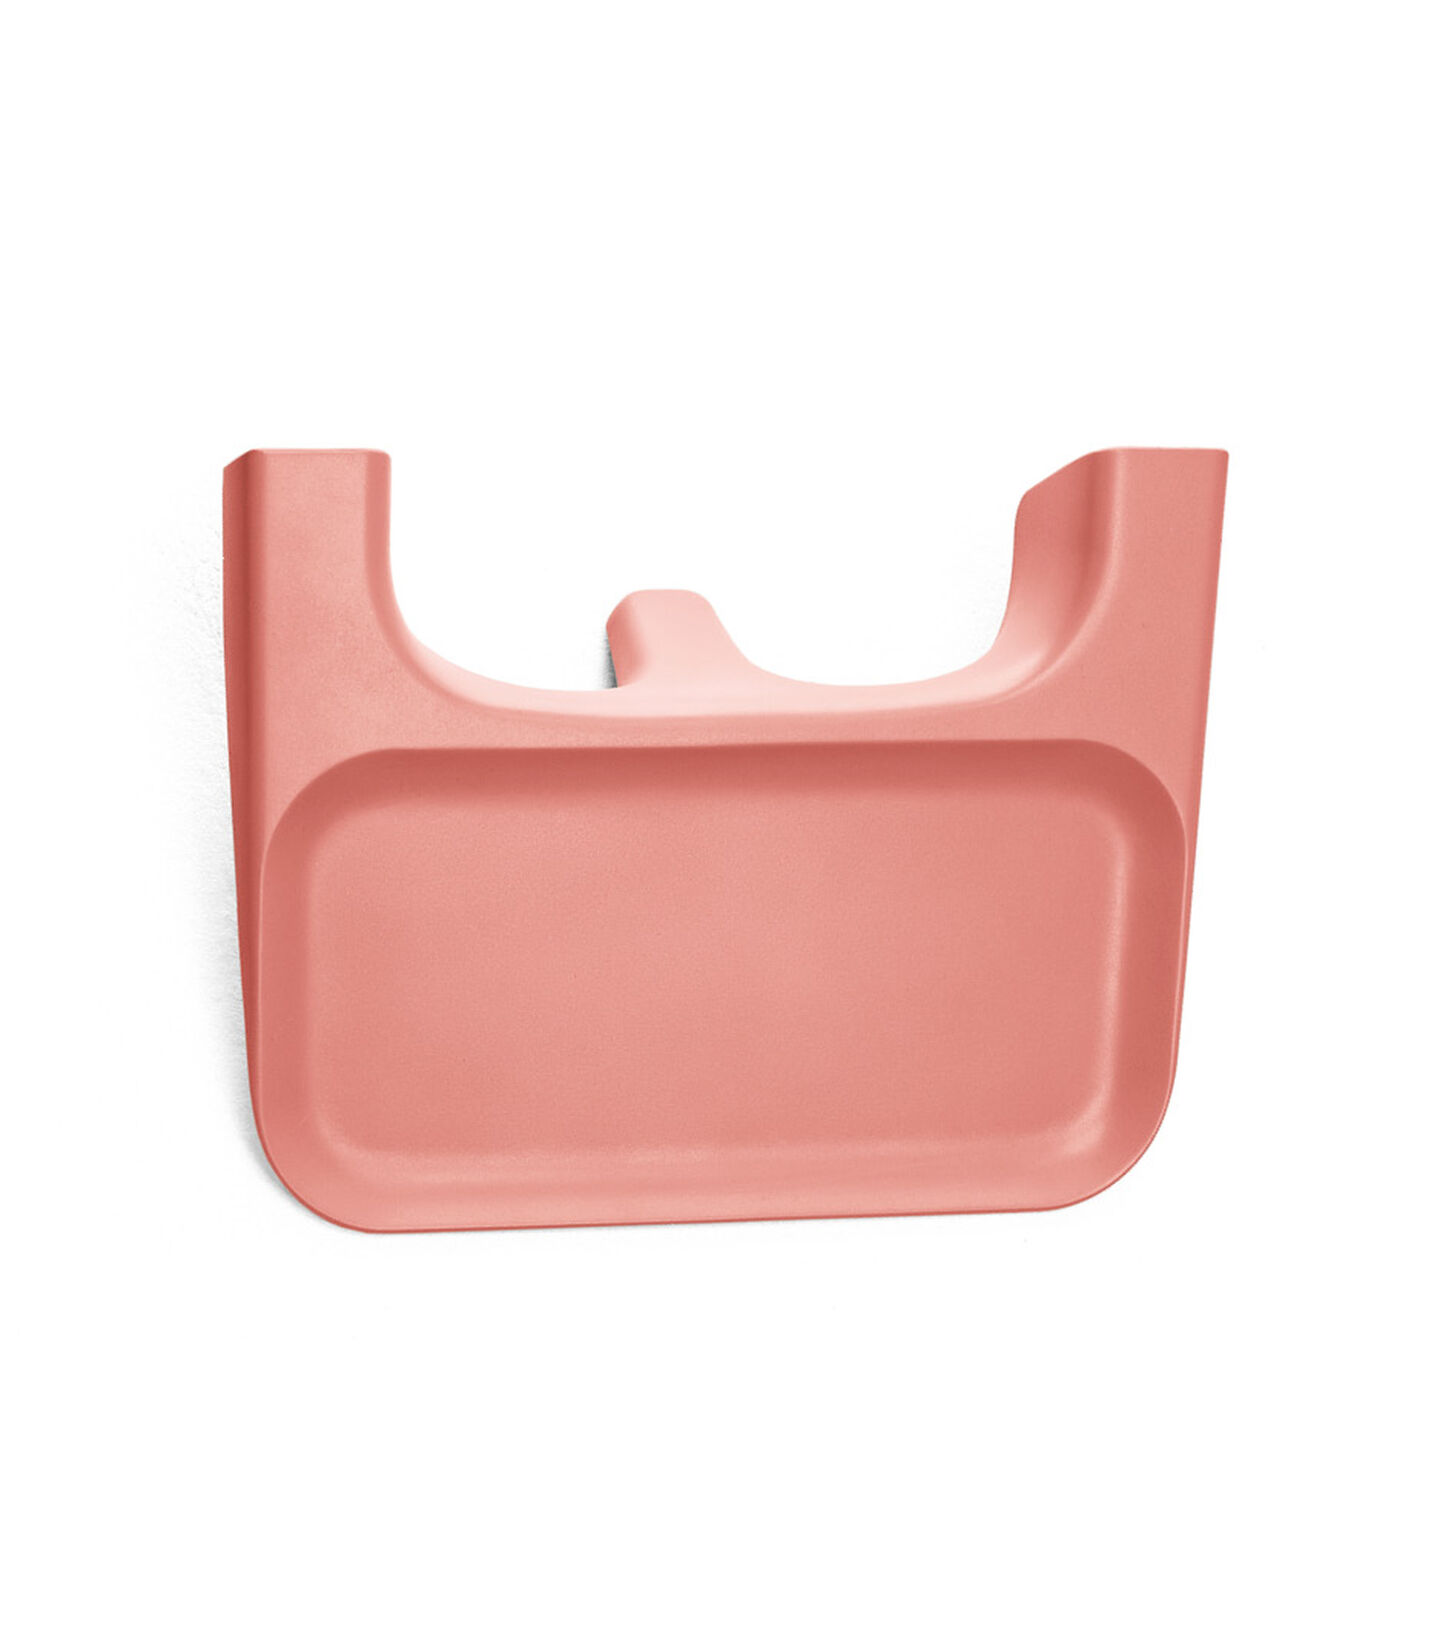 Stokke® Clikk™ Tray Sunny Coral, Sunny Coral, mainview view 1